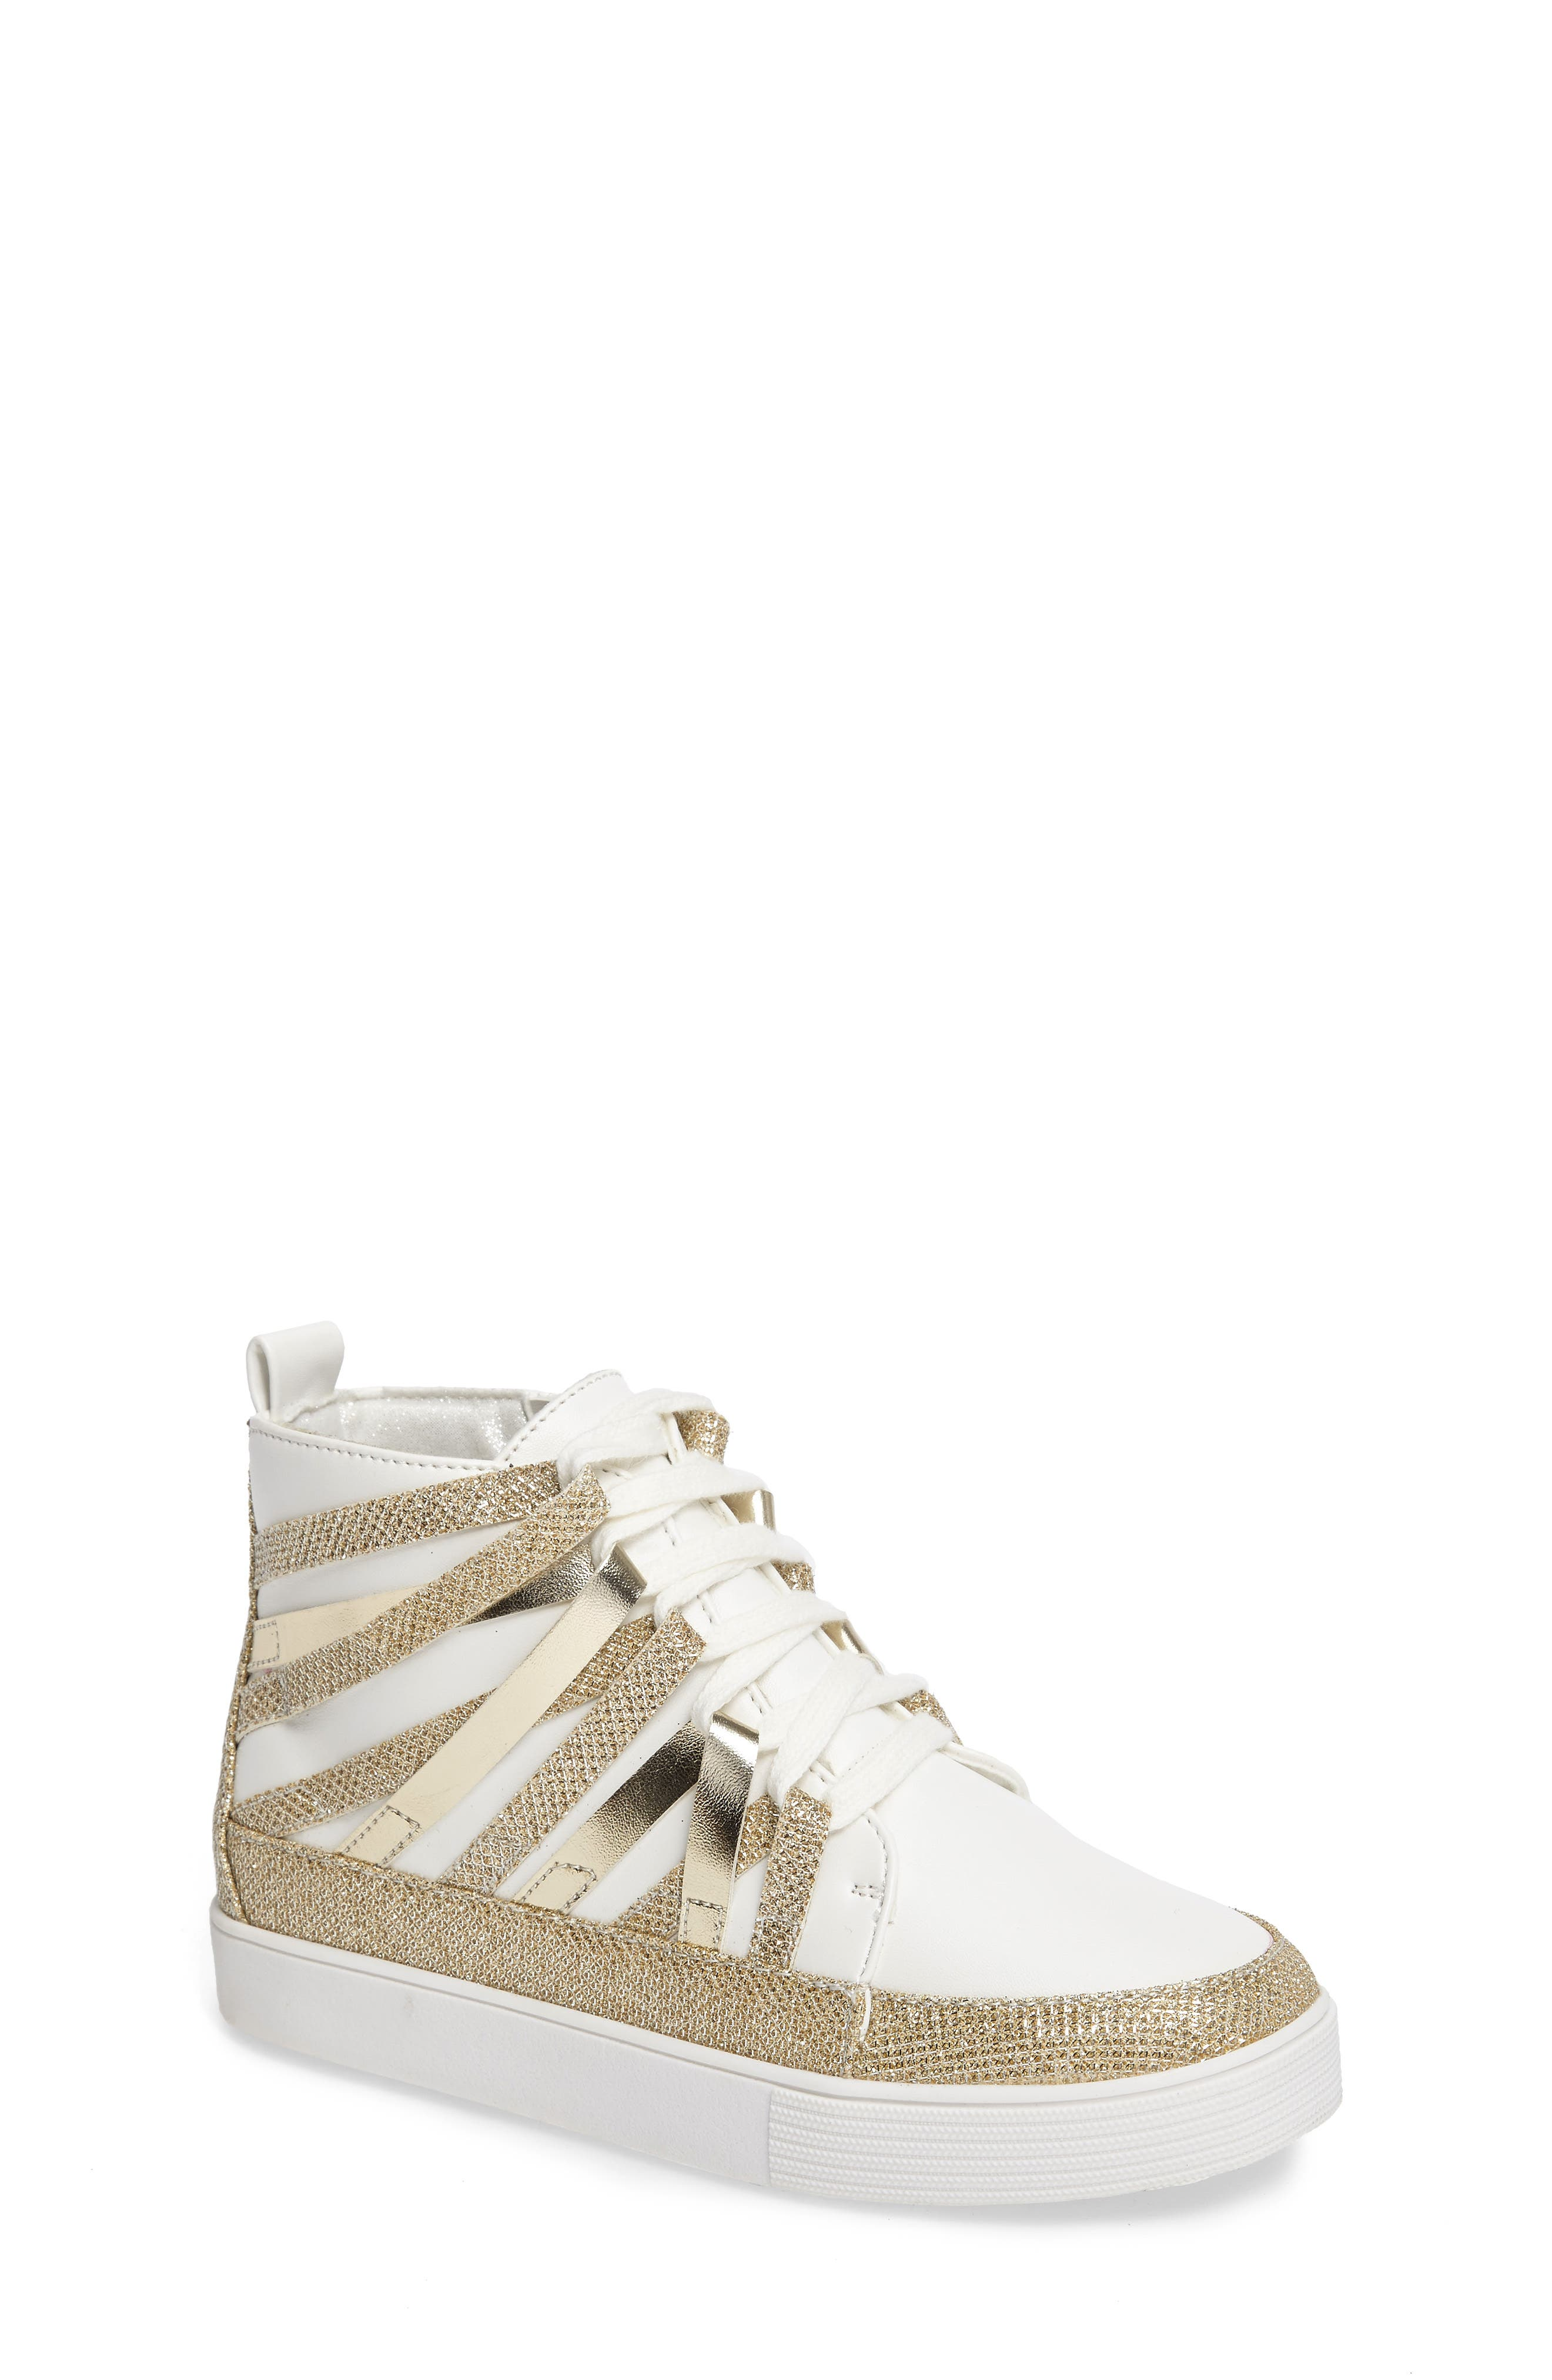 Vance Strappy High Top Sneaker,                             Main thumbnail 1, color,                             711